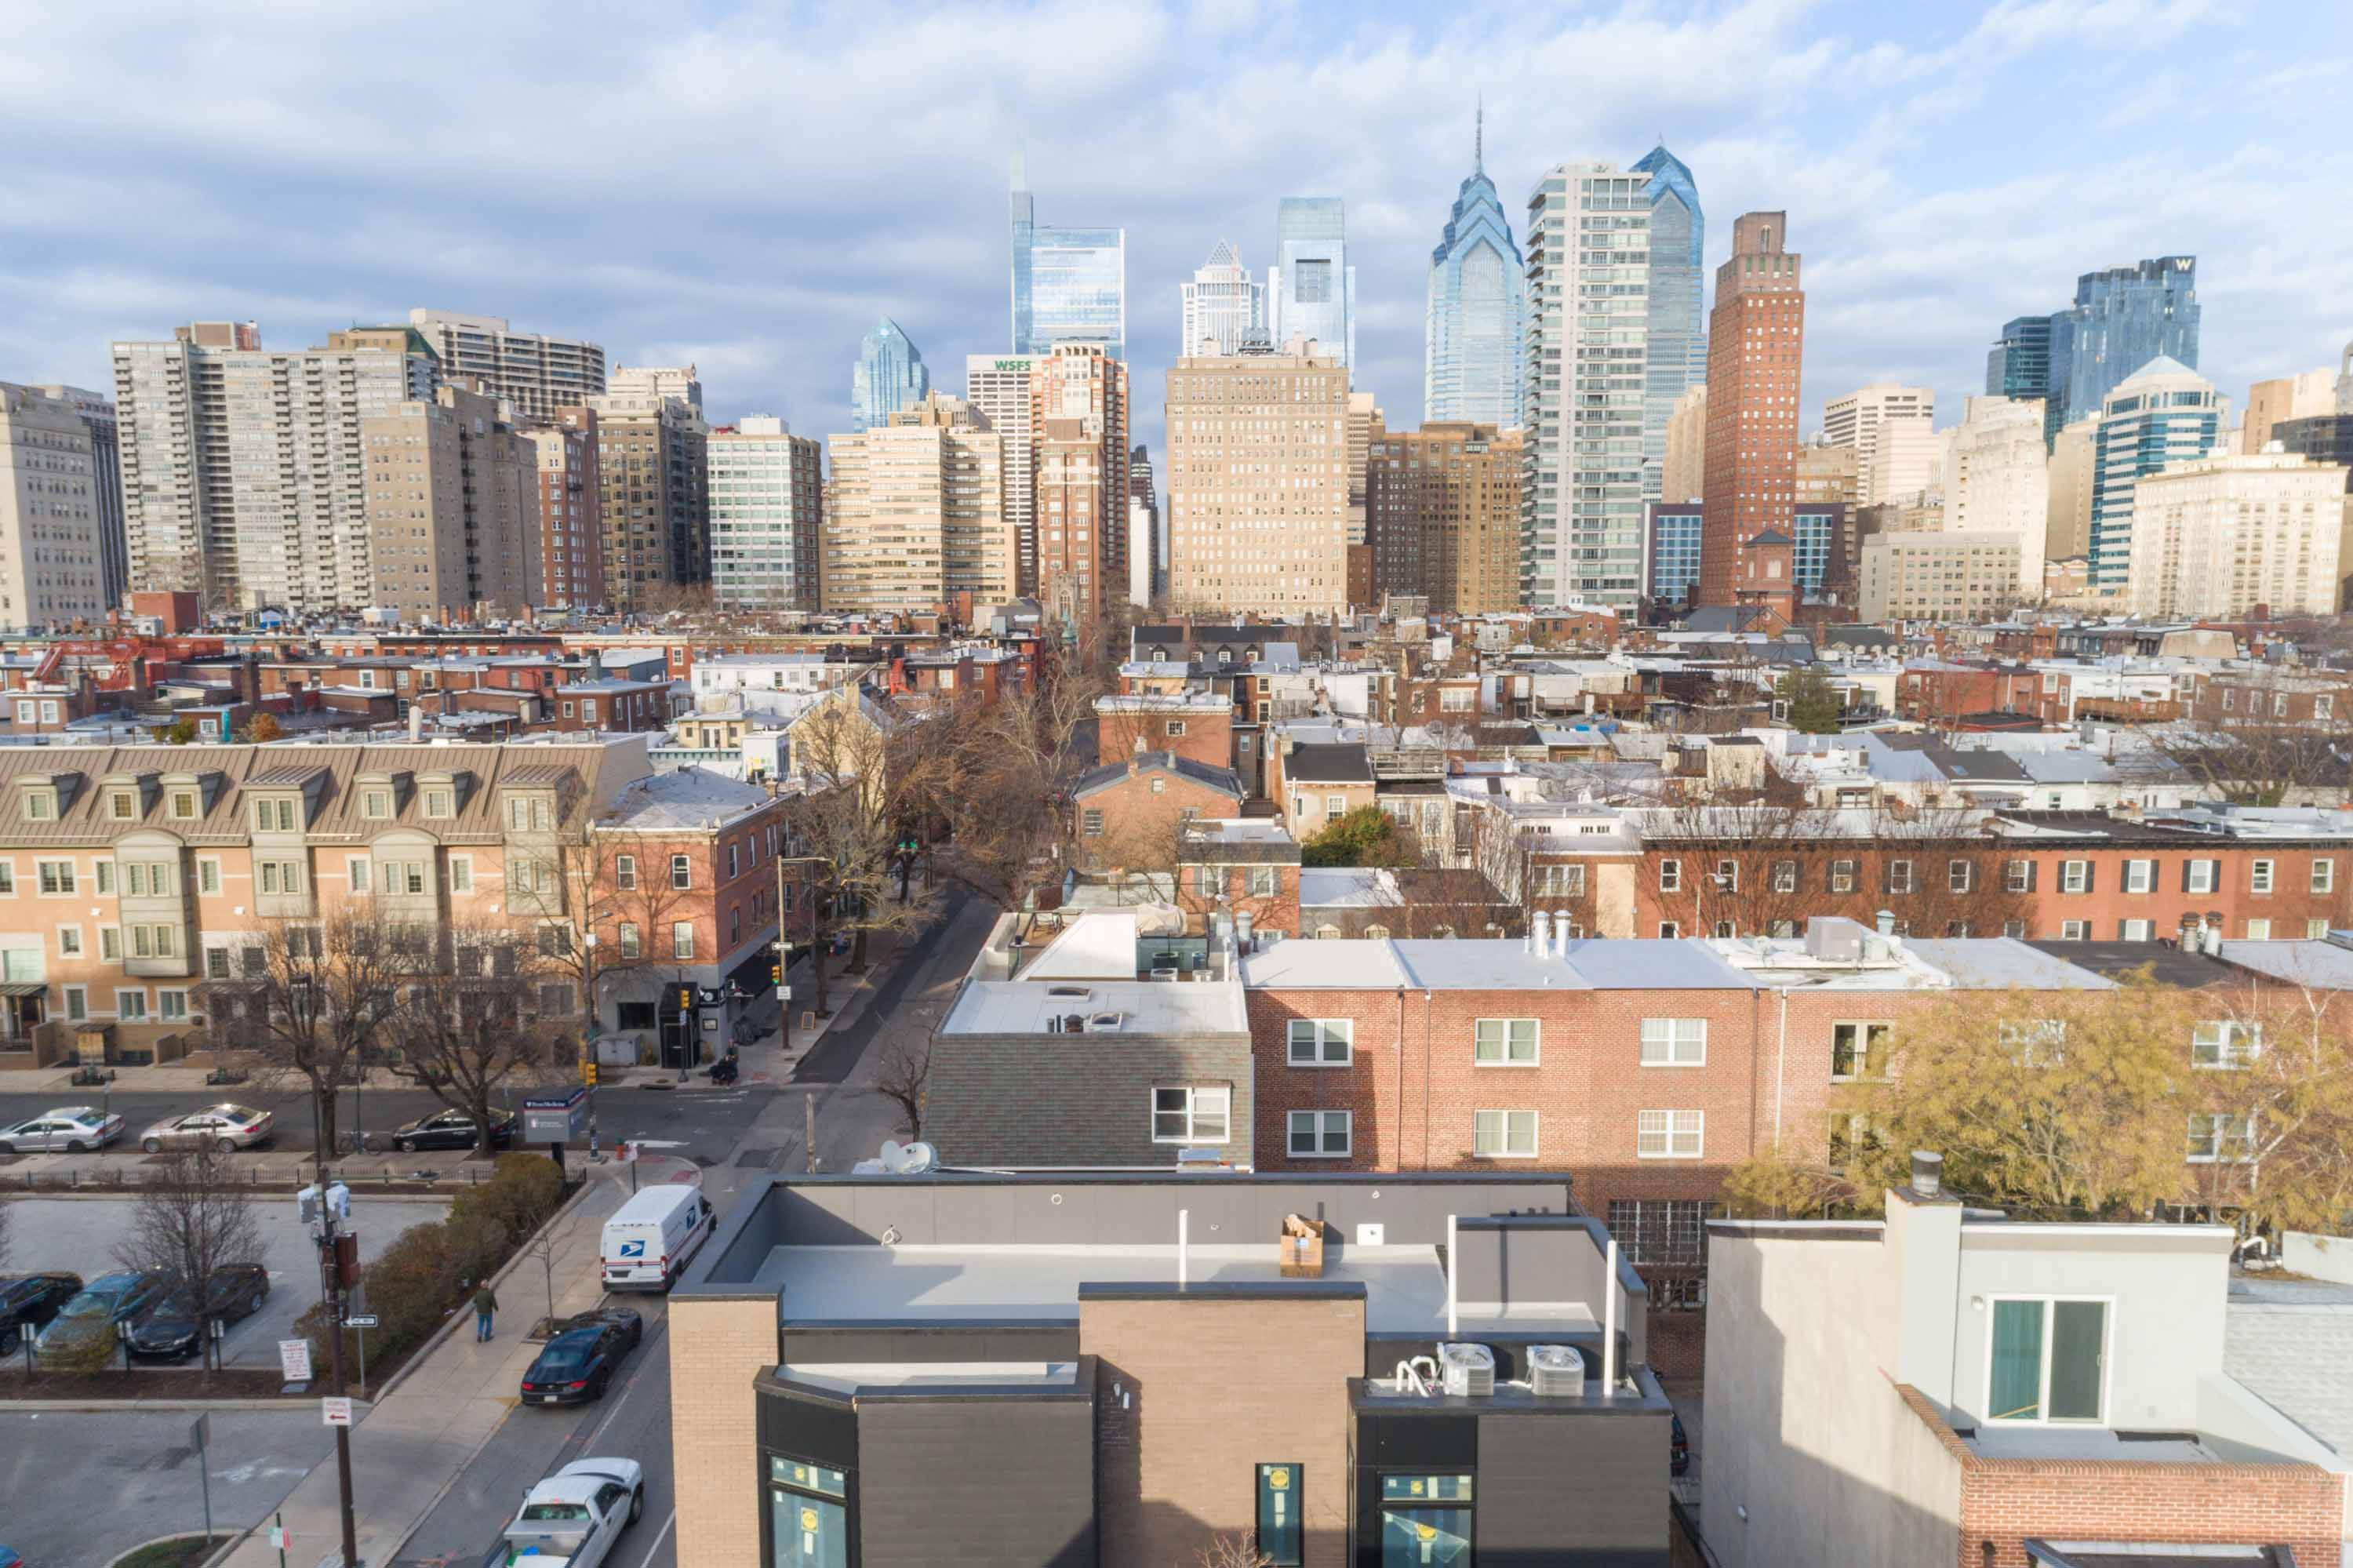 515 S 18TH ST 2020-01 AERIAL WEFILMPHILLY-0381